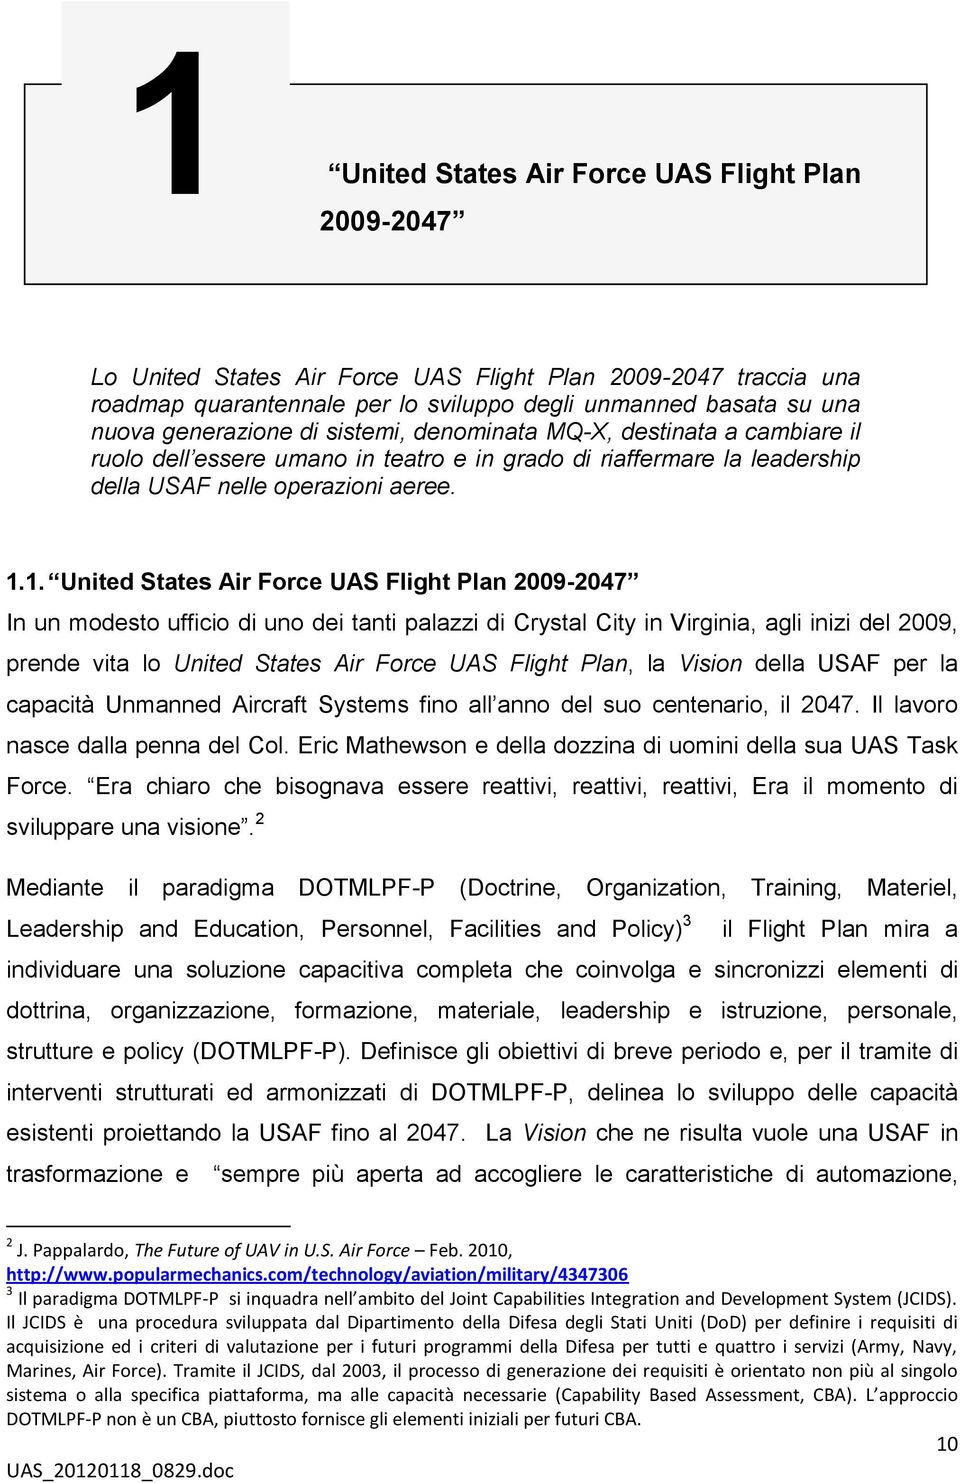 1. United States Air Force UAS Flight Plan 2009-2047 In un modesto ufficio di uno dei tanti palazzi di Crystal City in Virginia, agli inizi del 2009, prende vita lo United States Air Force UAS Flight